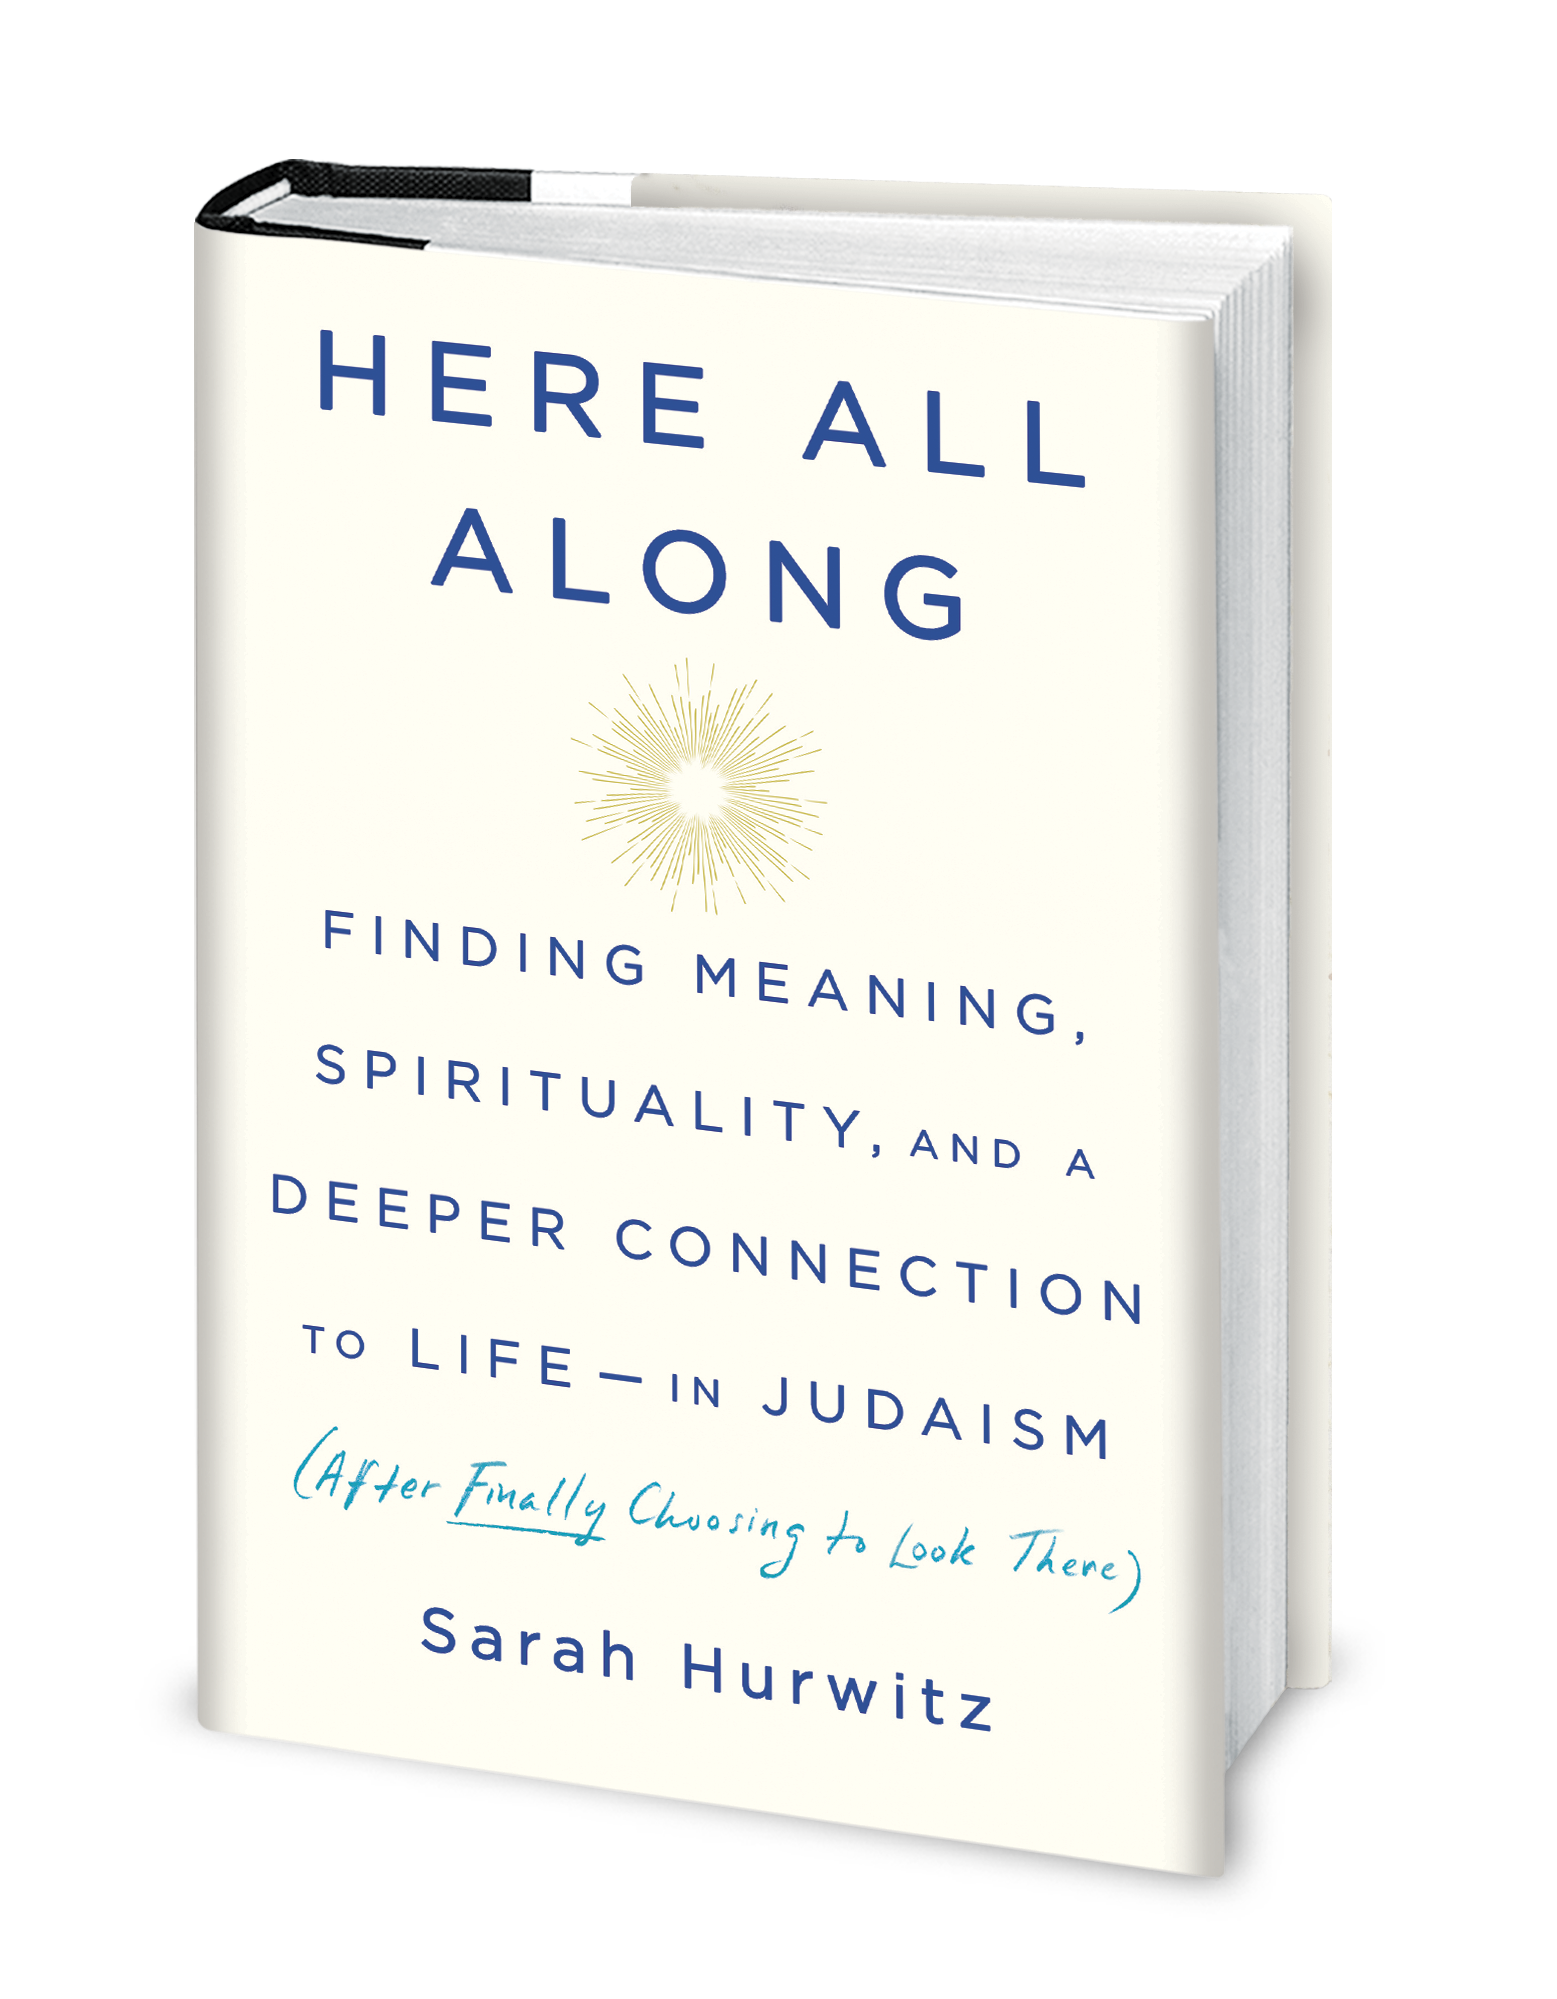 Here All Along by Sarah Hurwitz